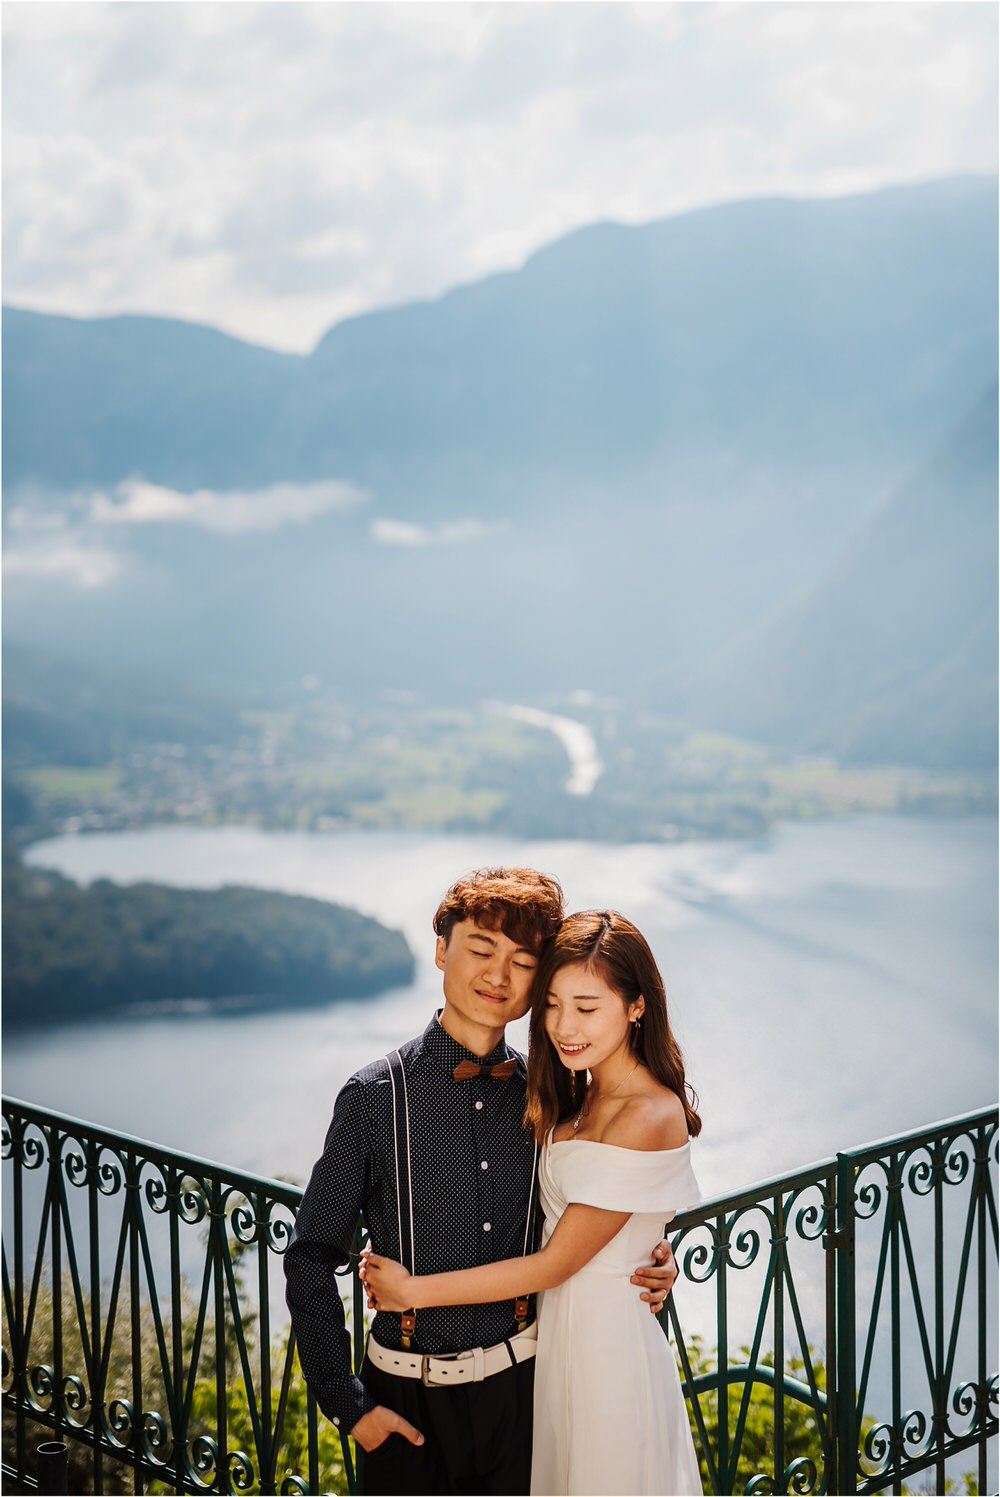 hallstatt austria wedding engagement photographer asian proposal surprise photography recommended nature professional 0069.jpg